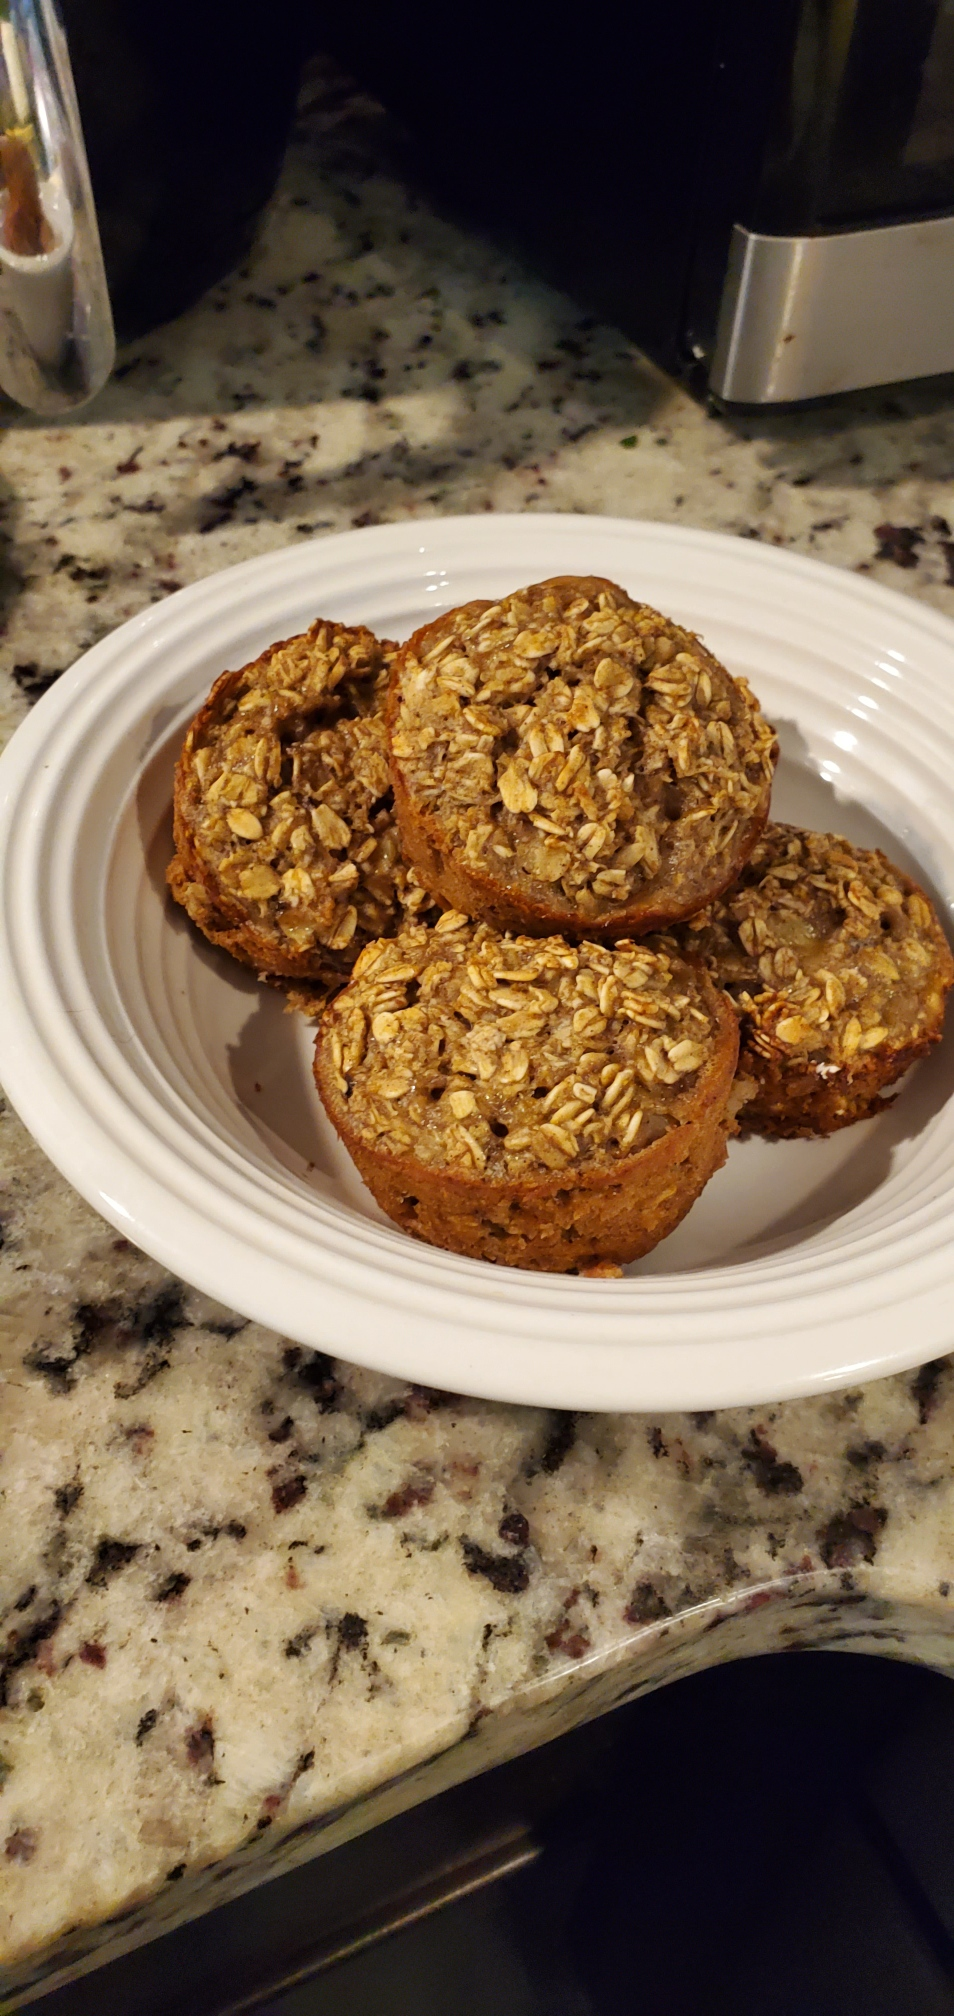 DCS Wellness Council member Delora Ruffin made healthier Banana Nut Muffins during their KNOWvember region-wide Challenge.